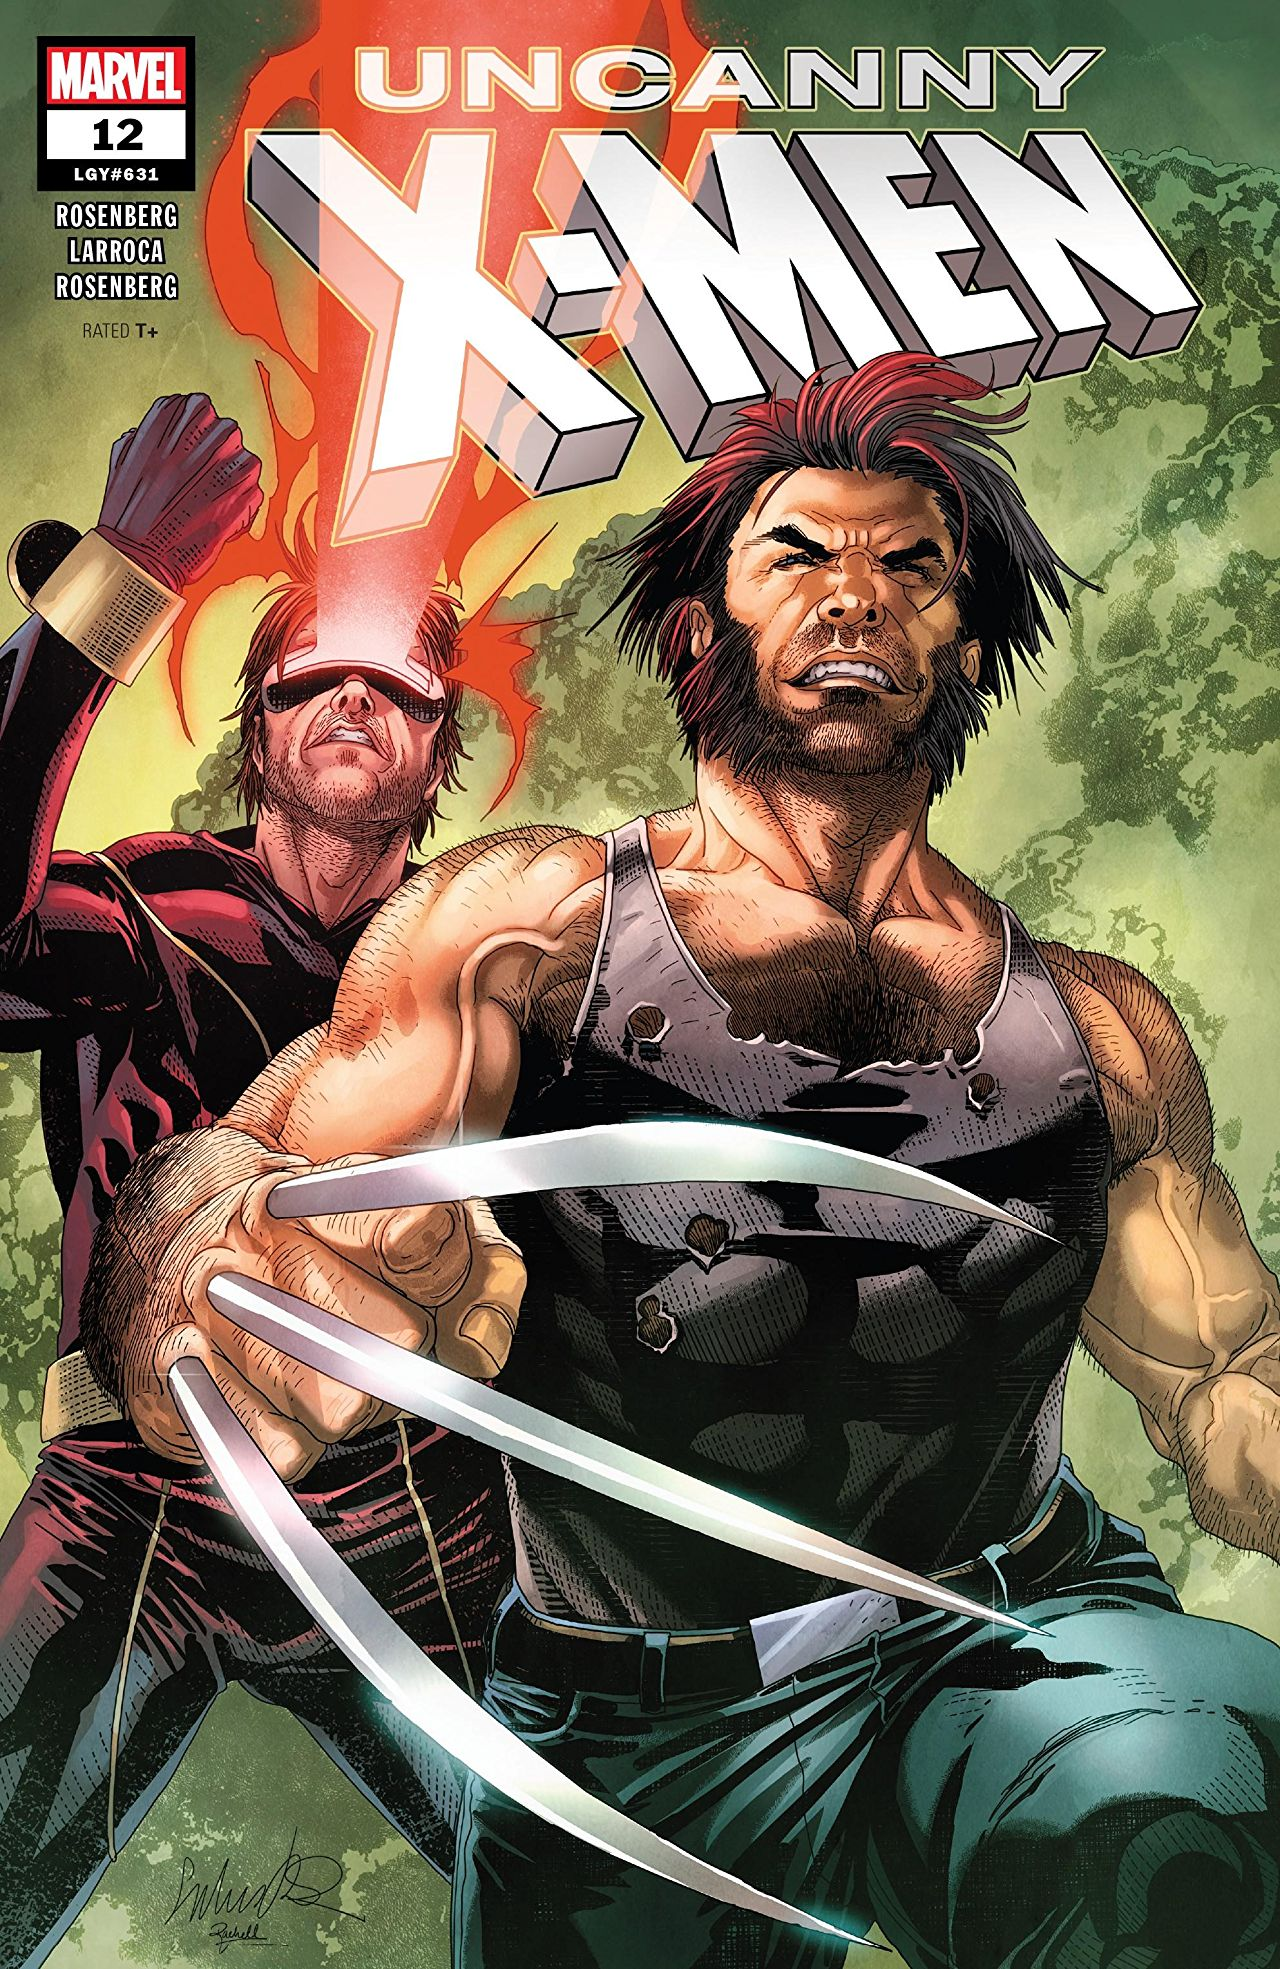 Marvel Preview: Uncanny X-Men #12